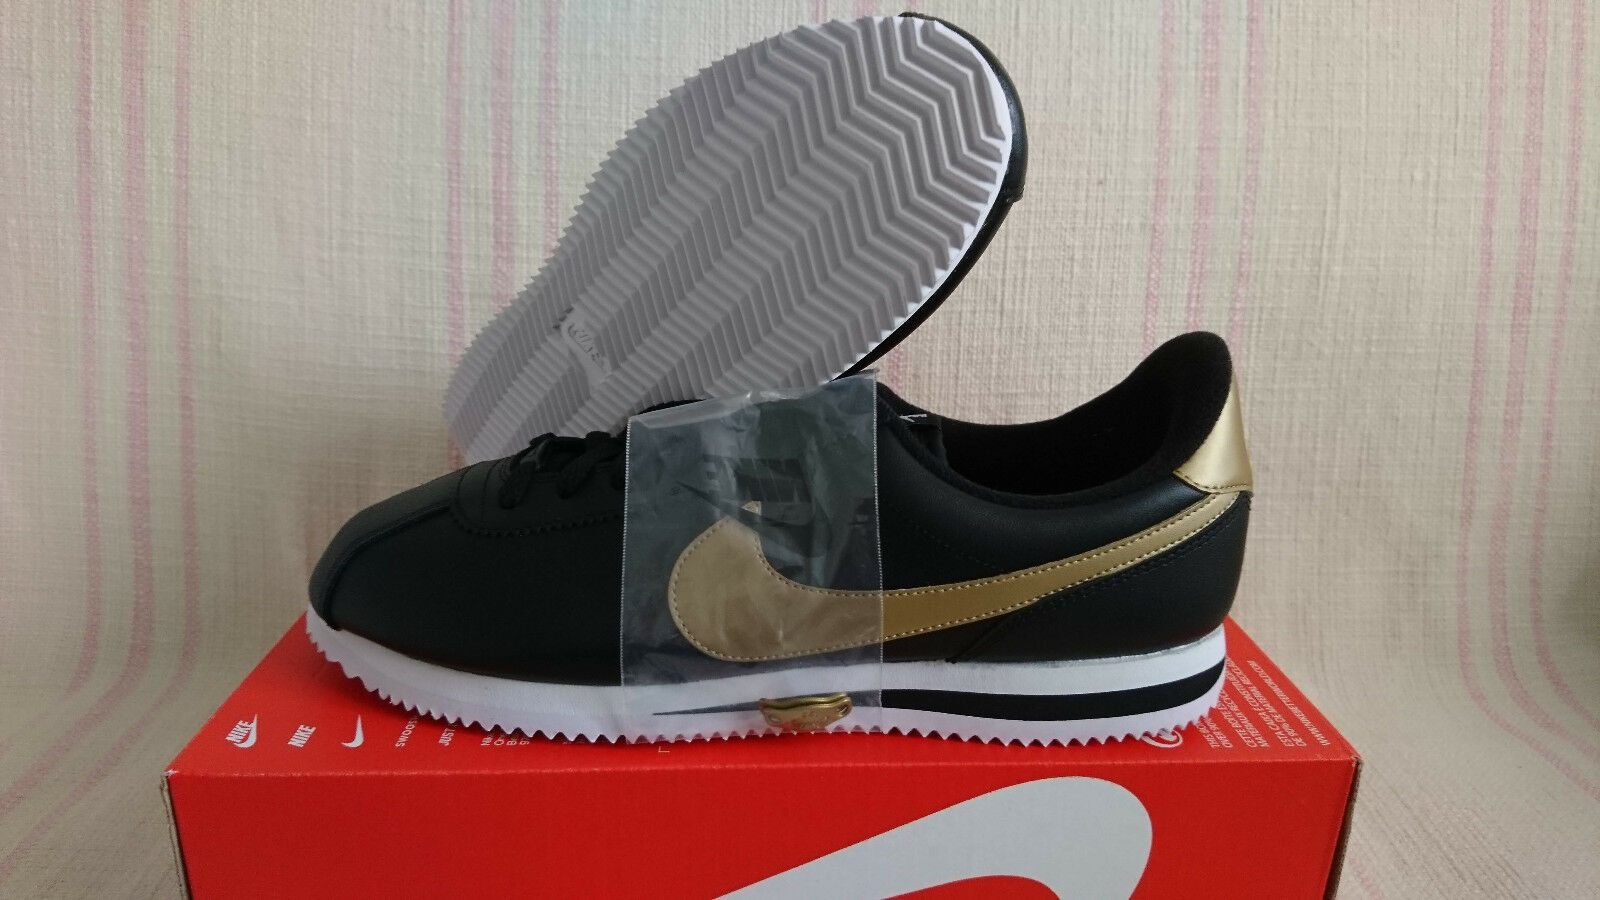 0ae7250b88d9 Nike Cortez Basic Leather SE Black Metallic GOLD GOLD GOLD White 884412 001  Size 12.5 Lows